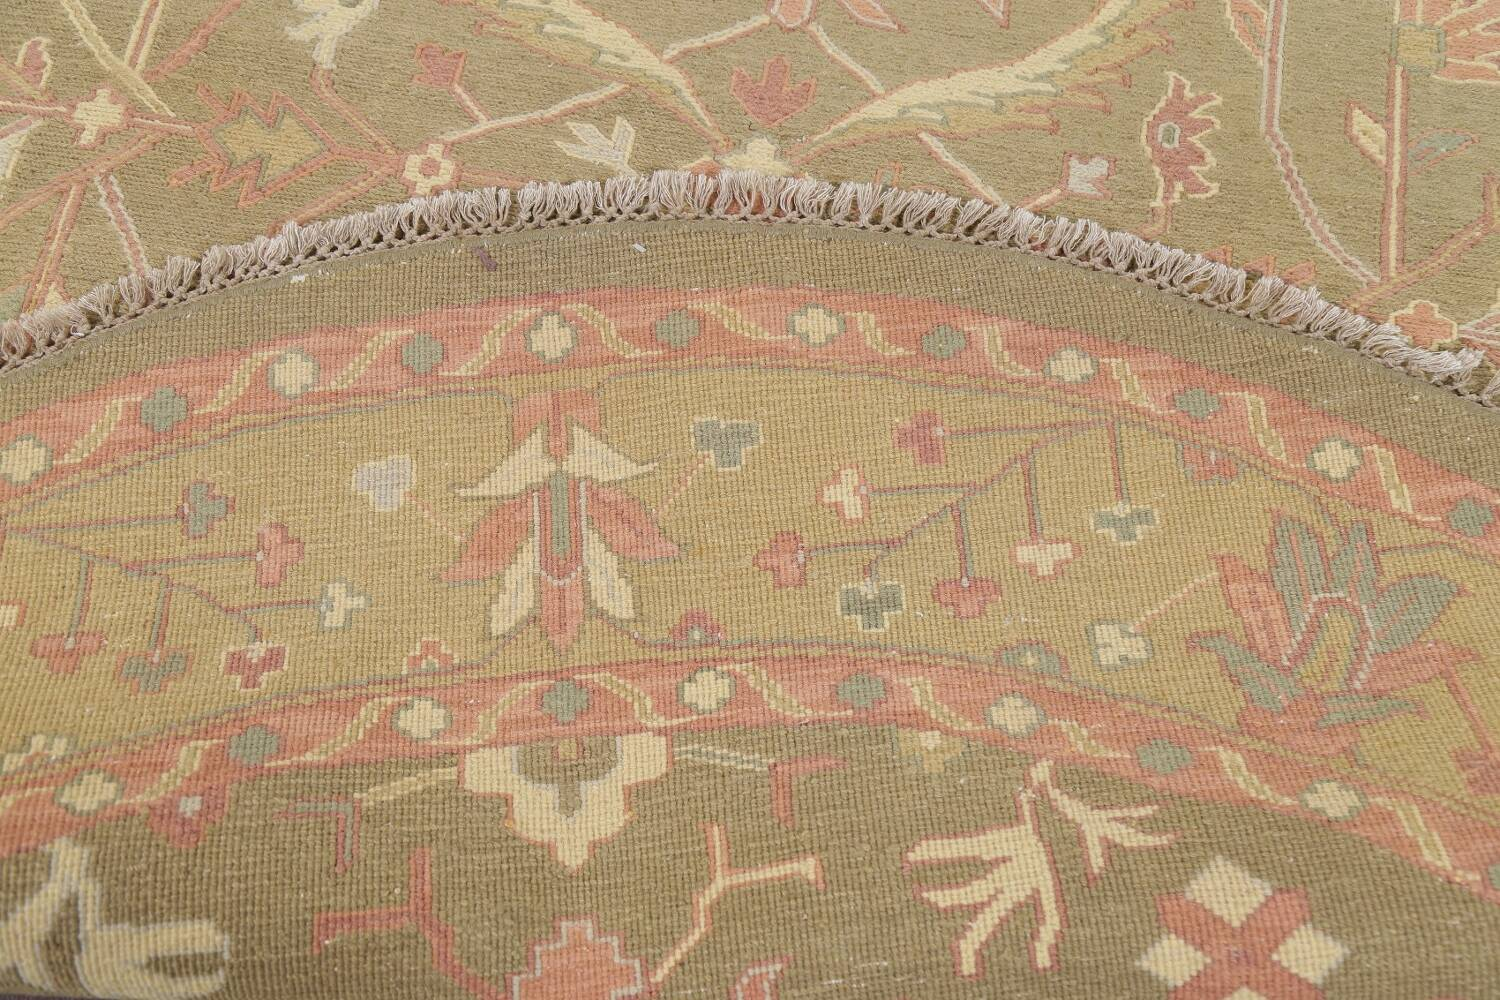 All-Over Green Floral Sumak Oriental Area Rug 8x8 Roud image 7